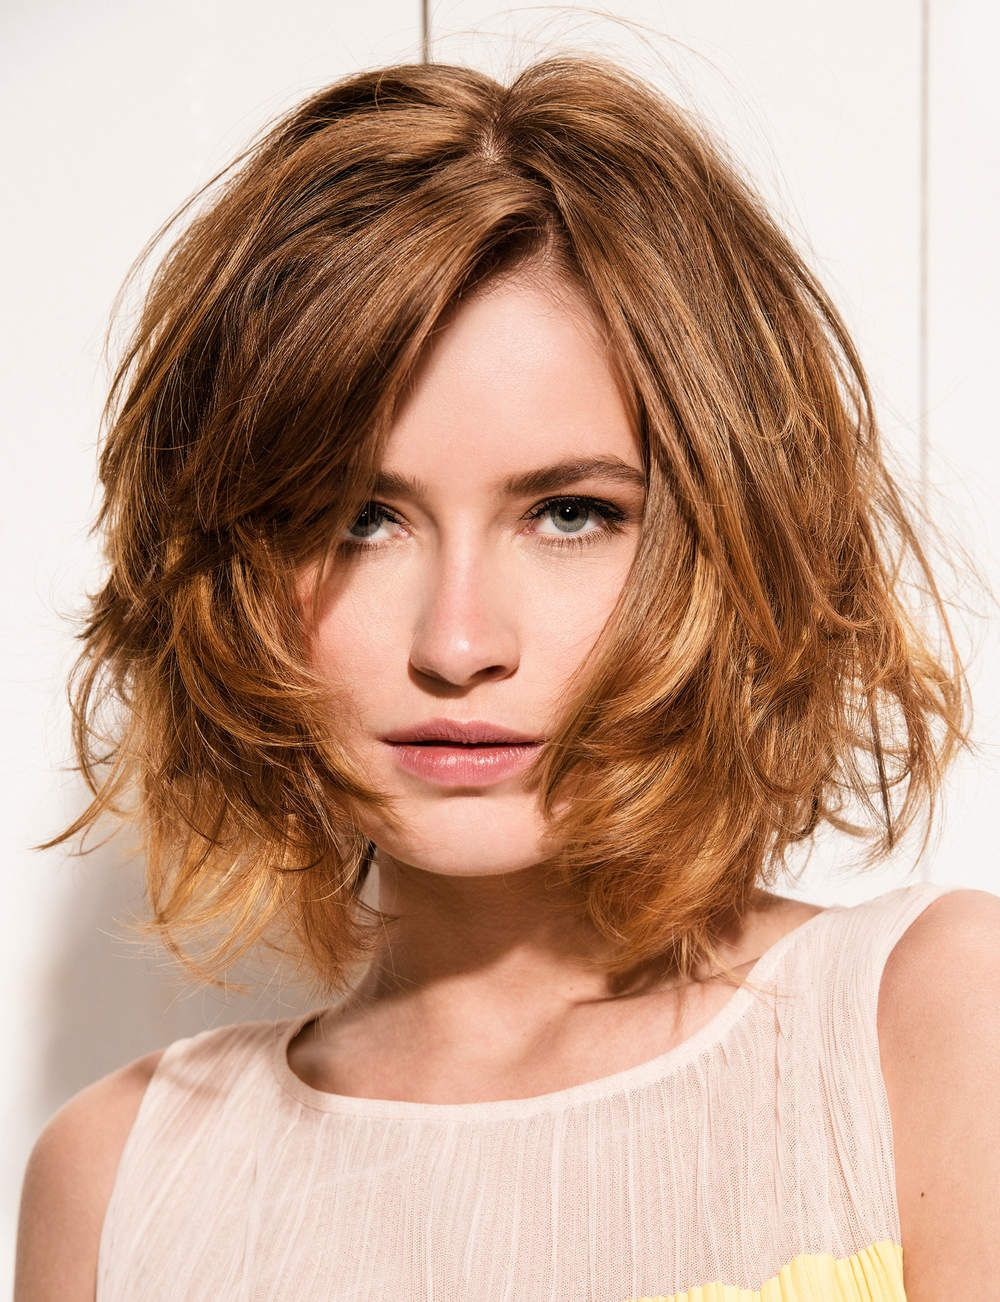 1000 Images About Coiffure On Pinterest Short Hair Styles